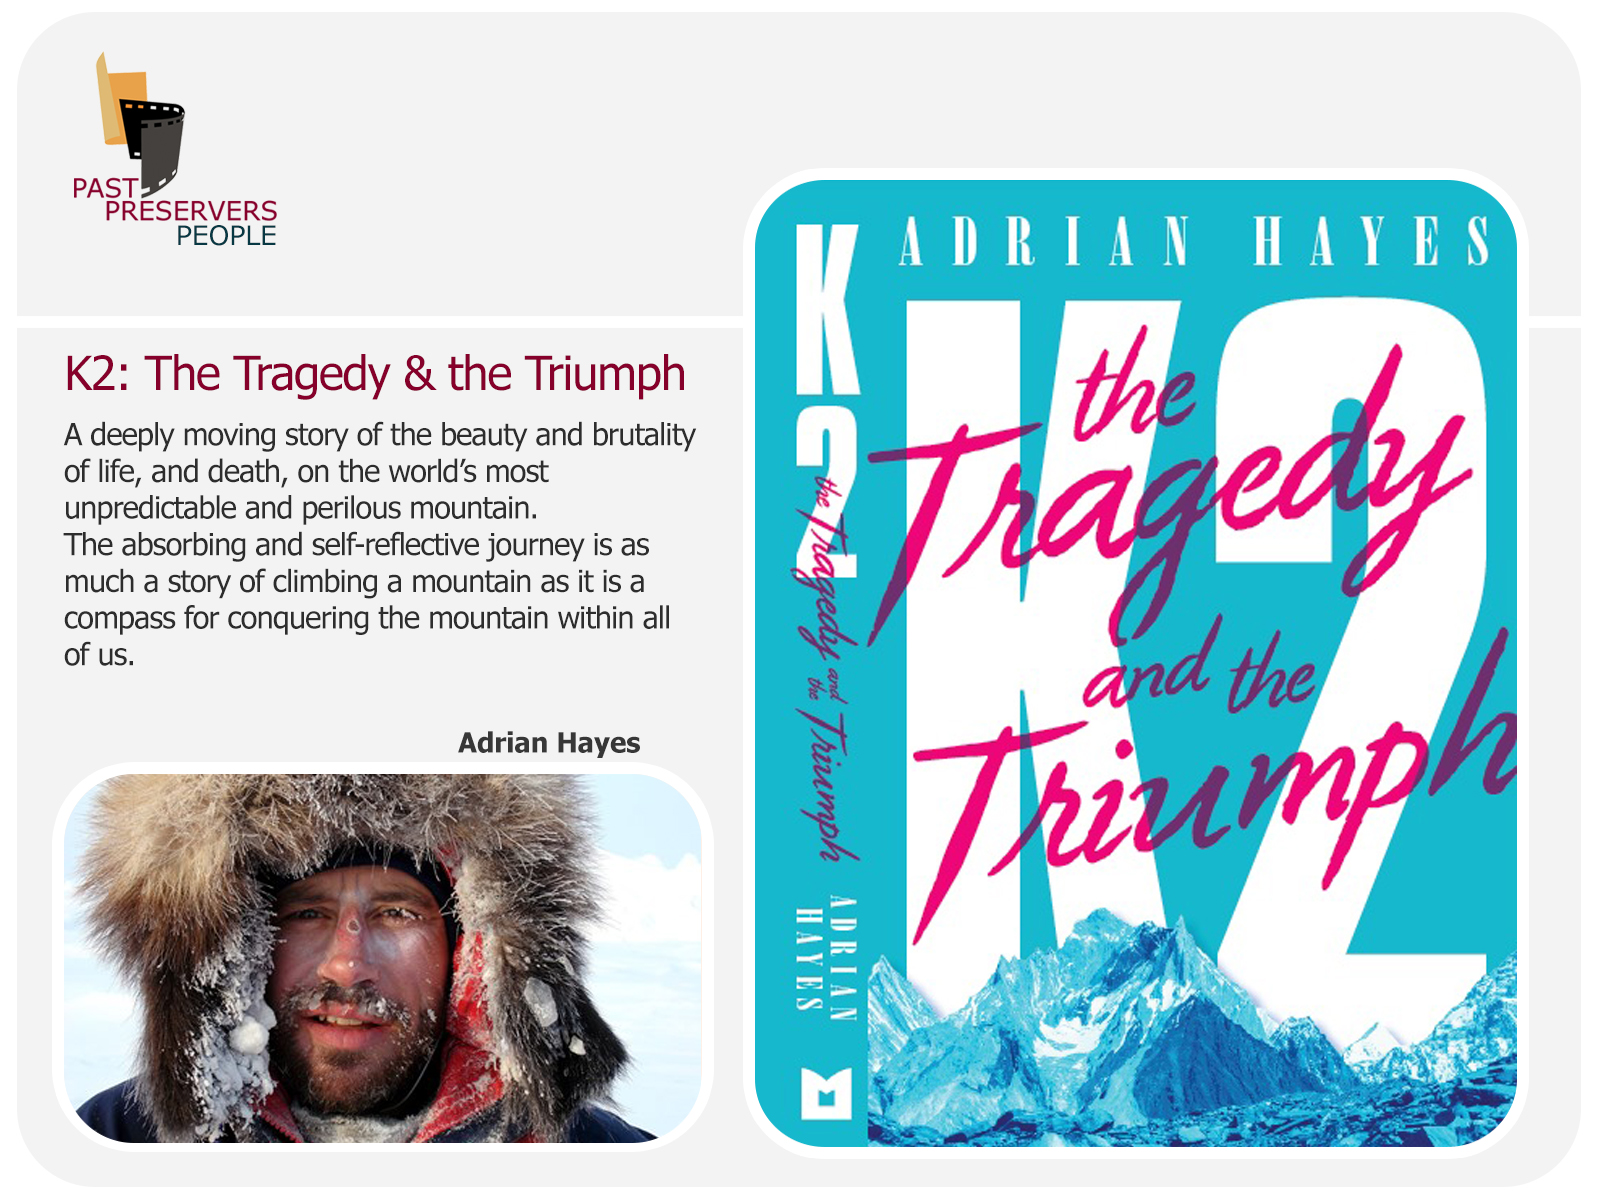 Latest book from our presenter Explorer Adrian Hayes!